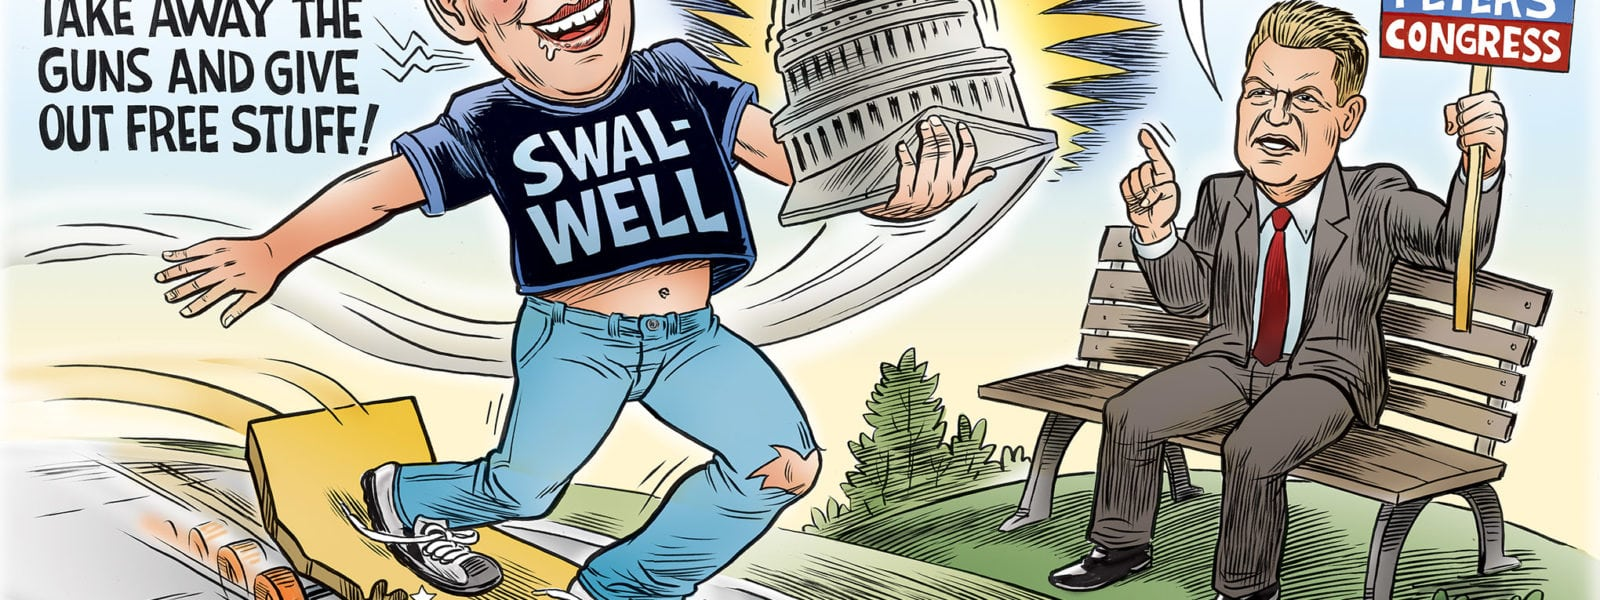 The Boy Eric Swalwell Vs Rudy Peters the Adult